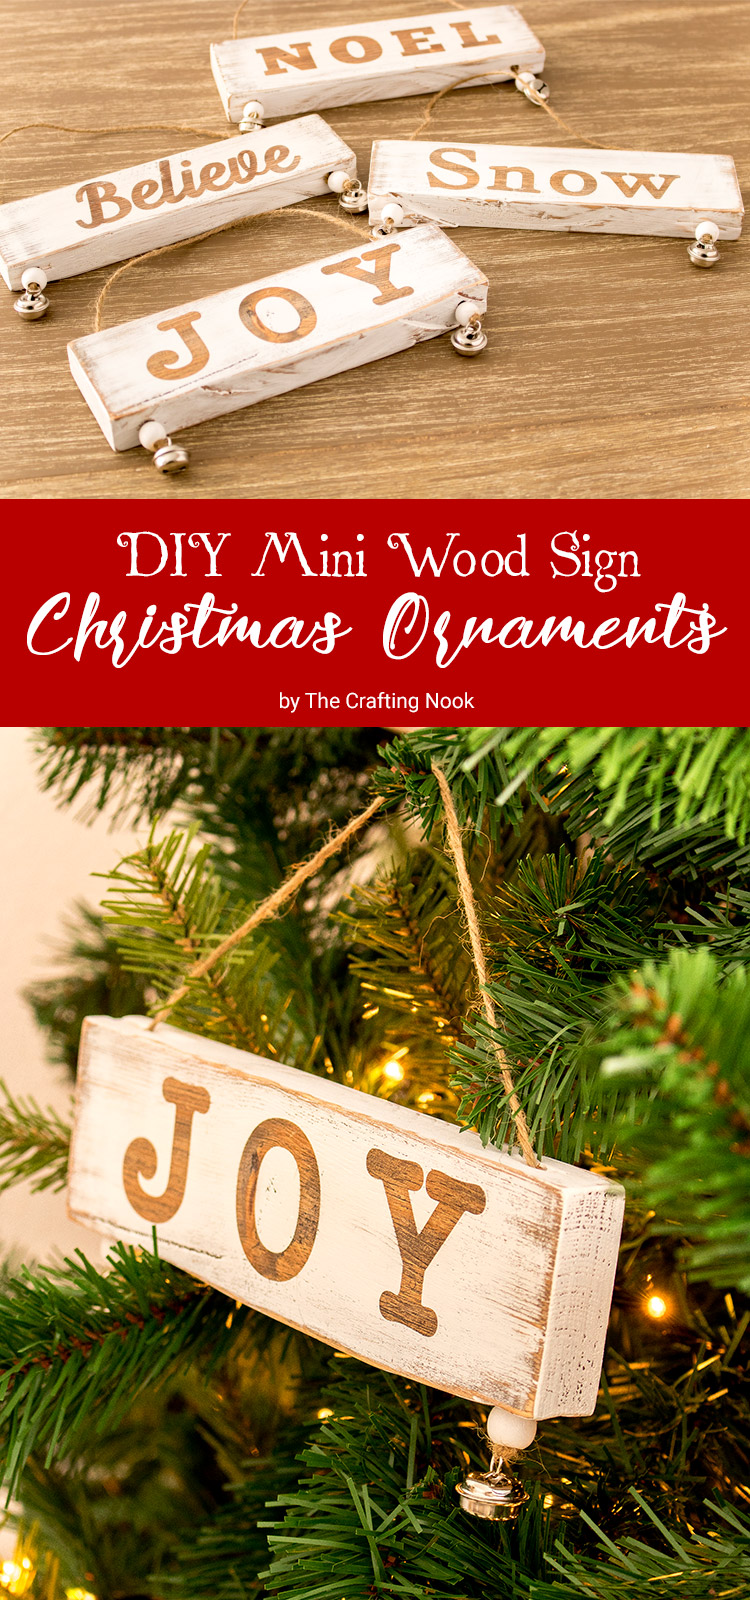 DIY Mini Wood Sign Christmas Ornaments